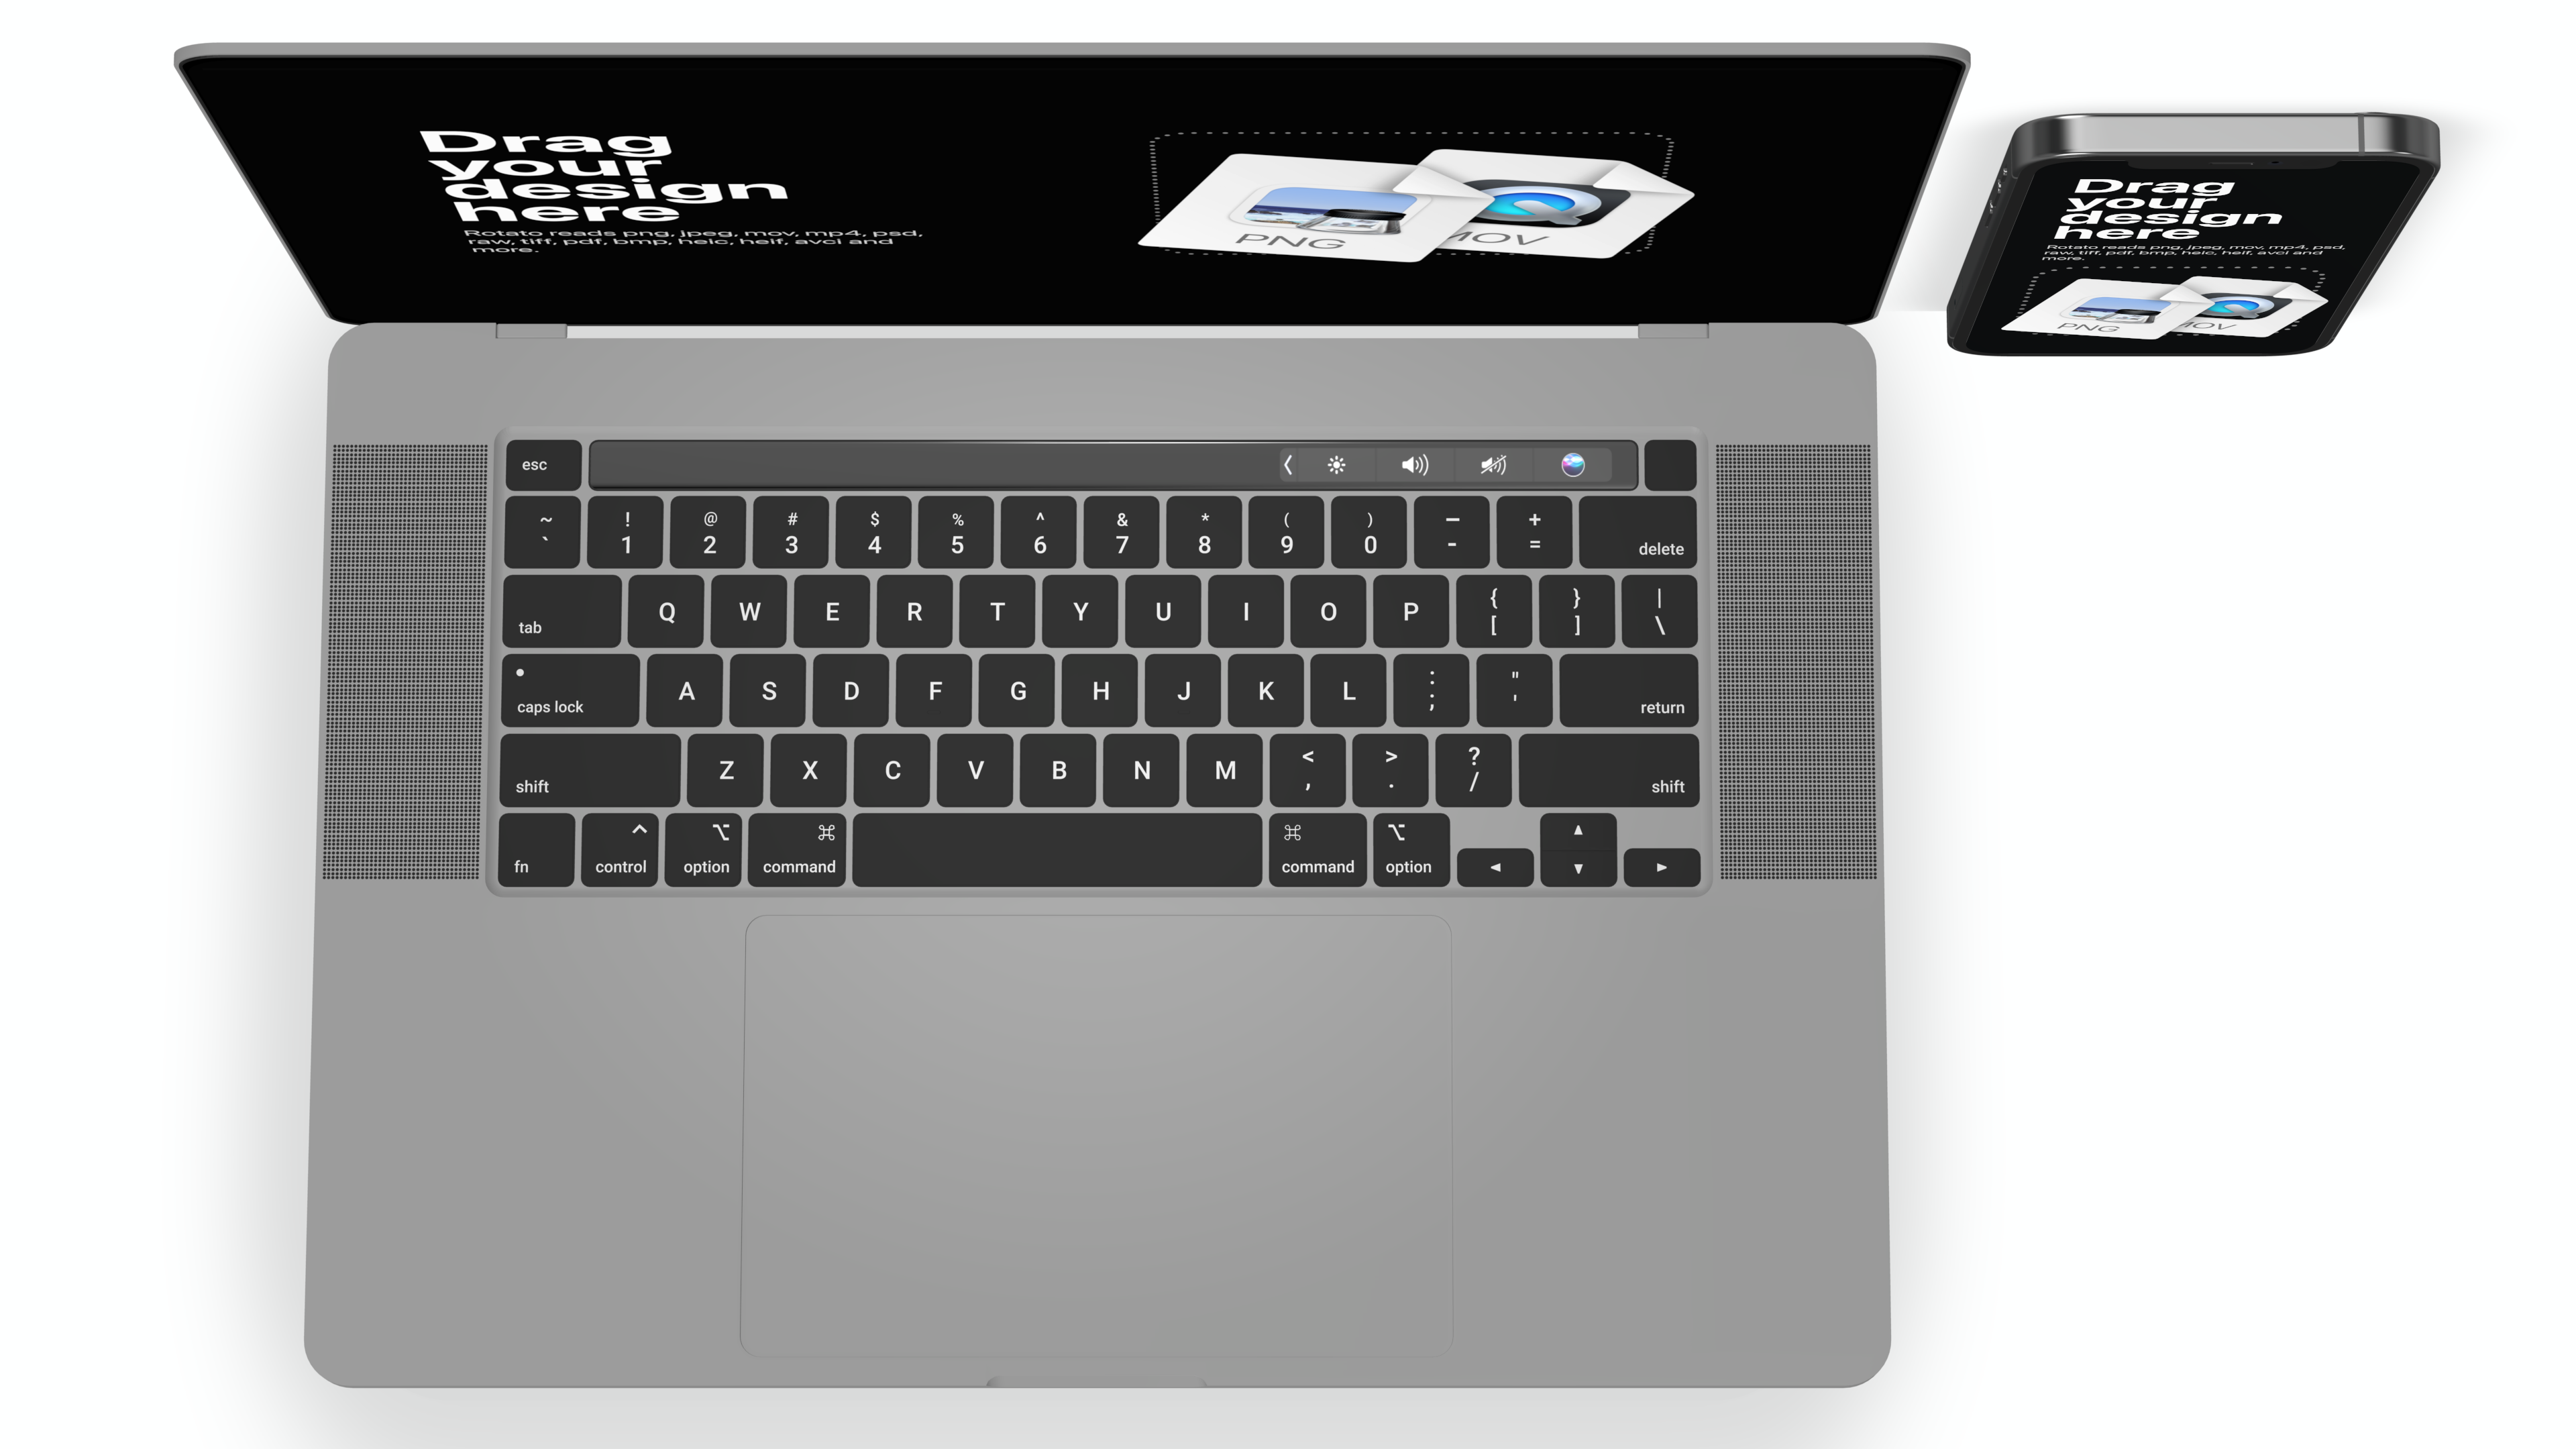 Top view of a standard Macbook 2020 and an iPhone